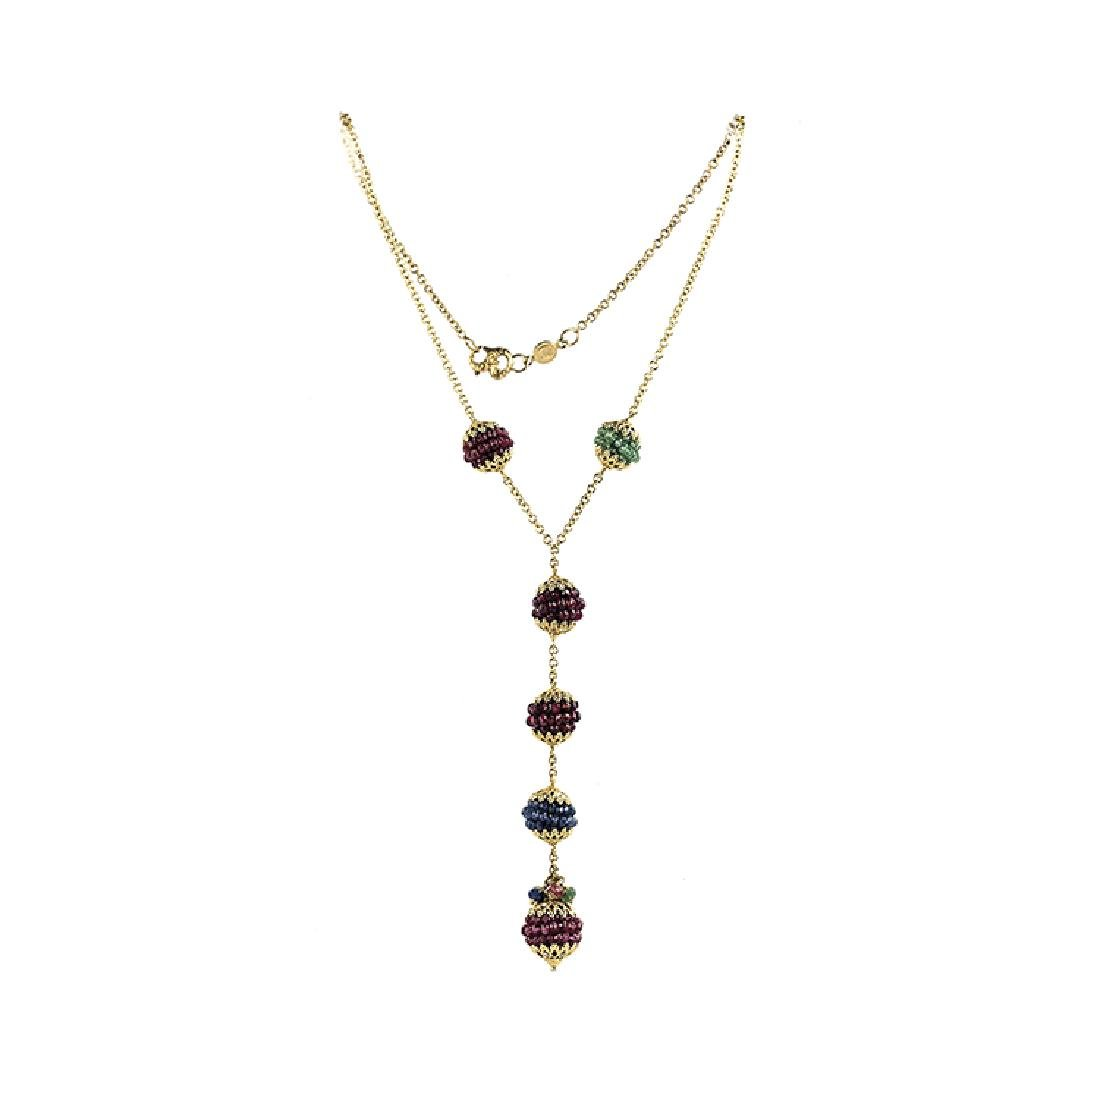 Necklace with spheres of rubies and emerald